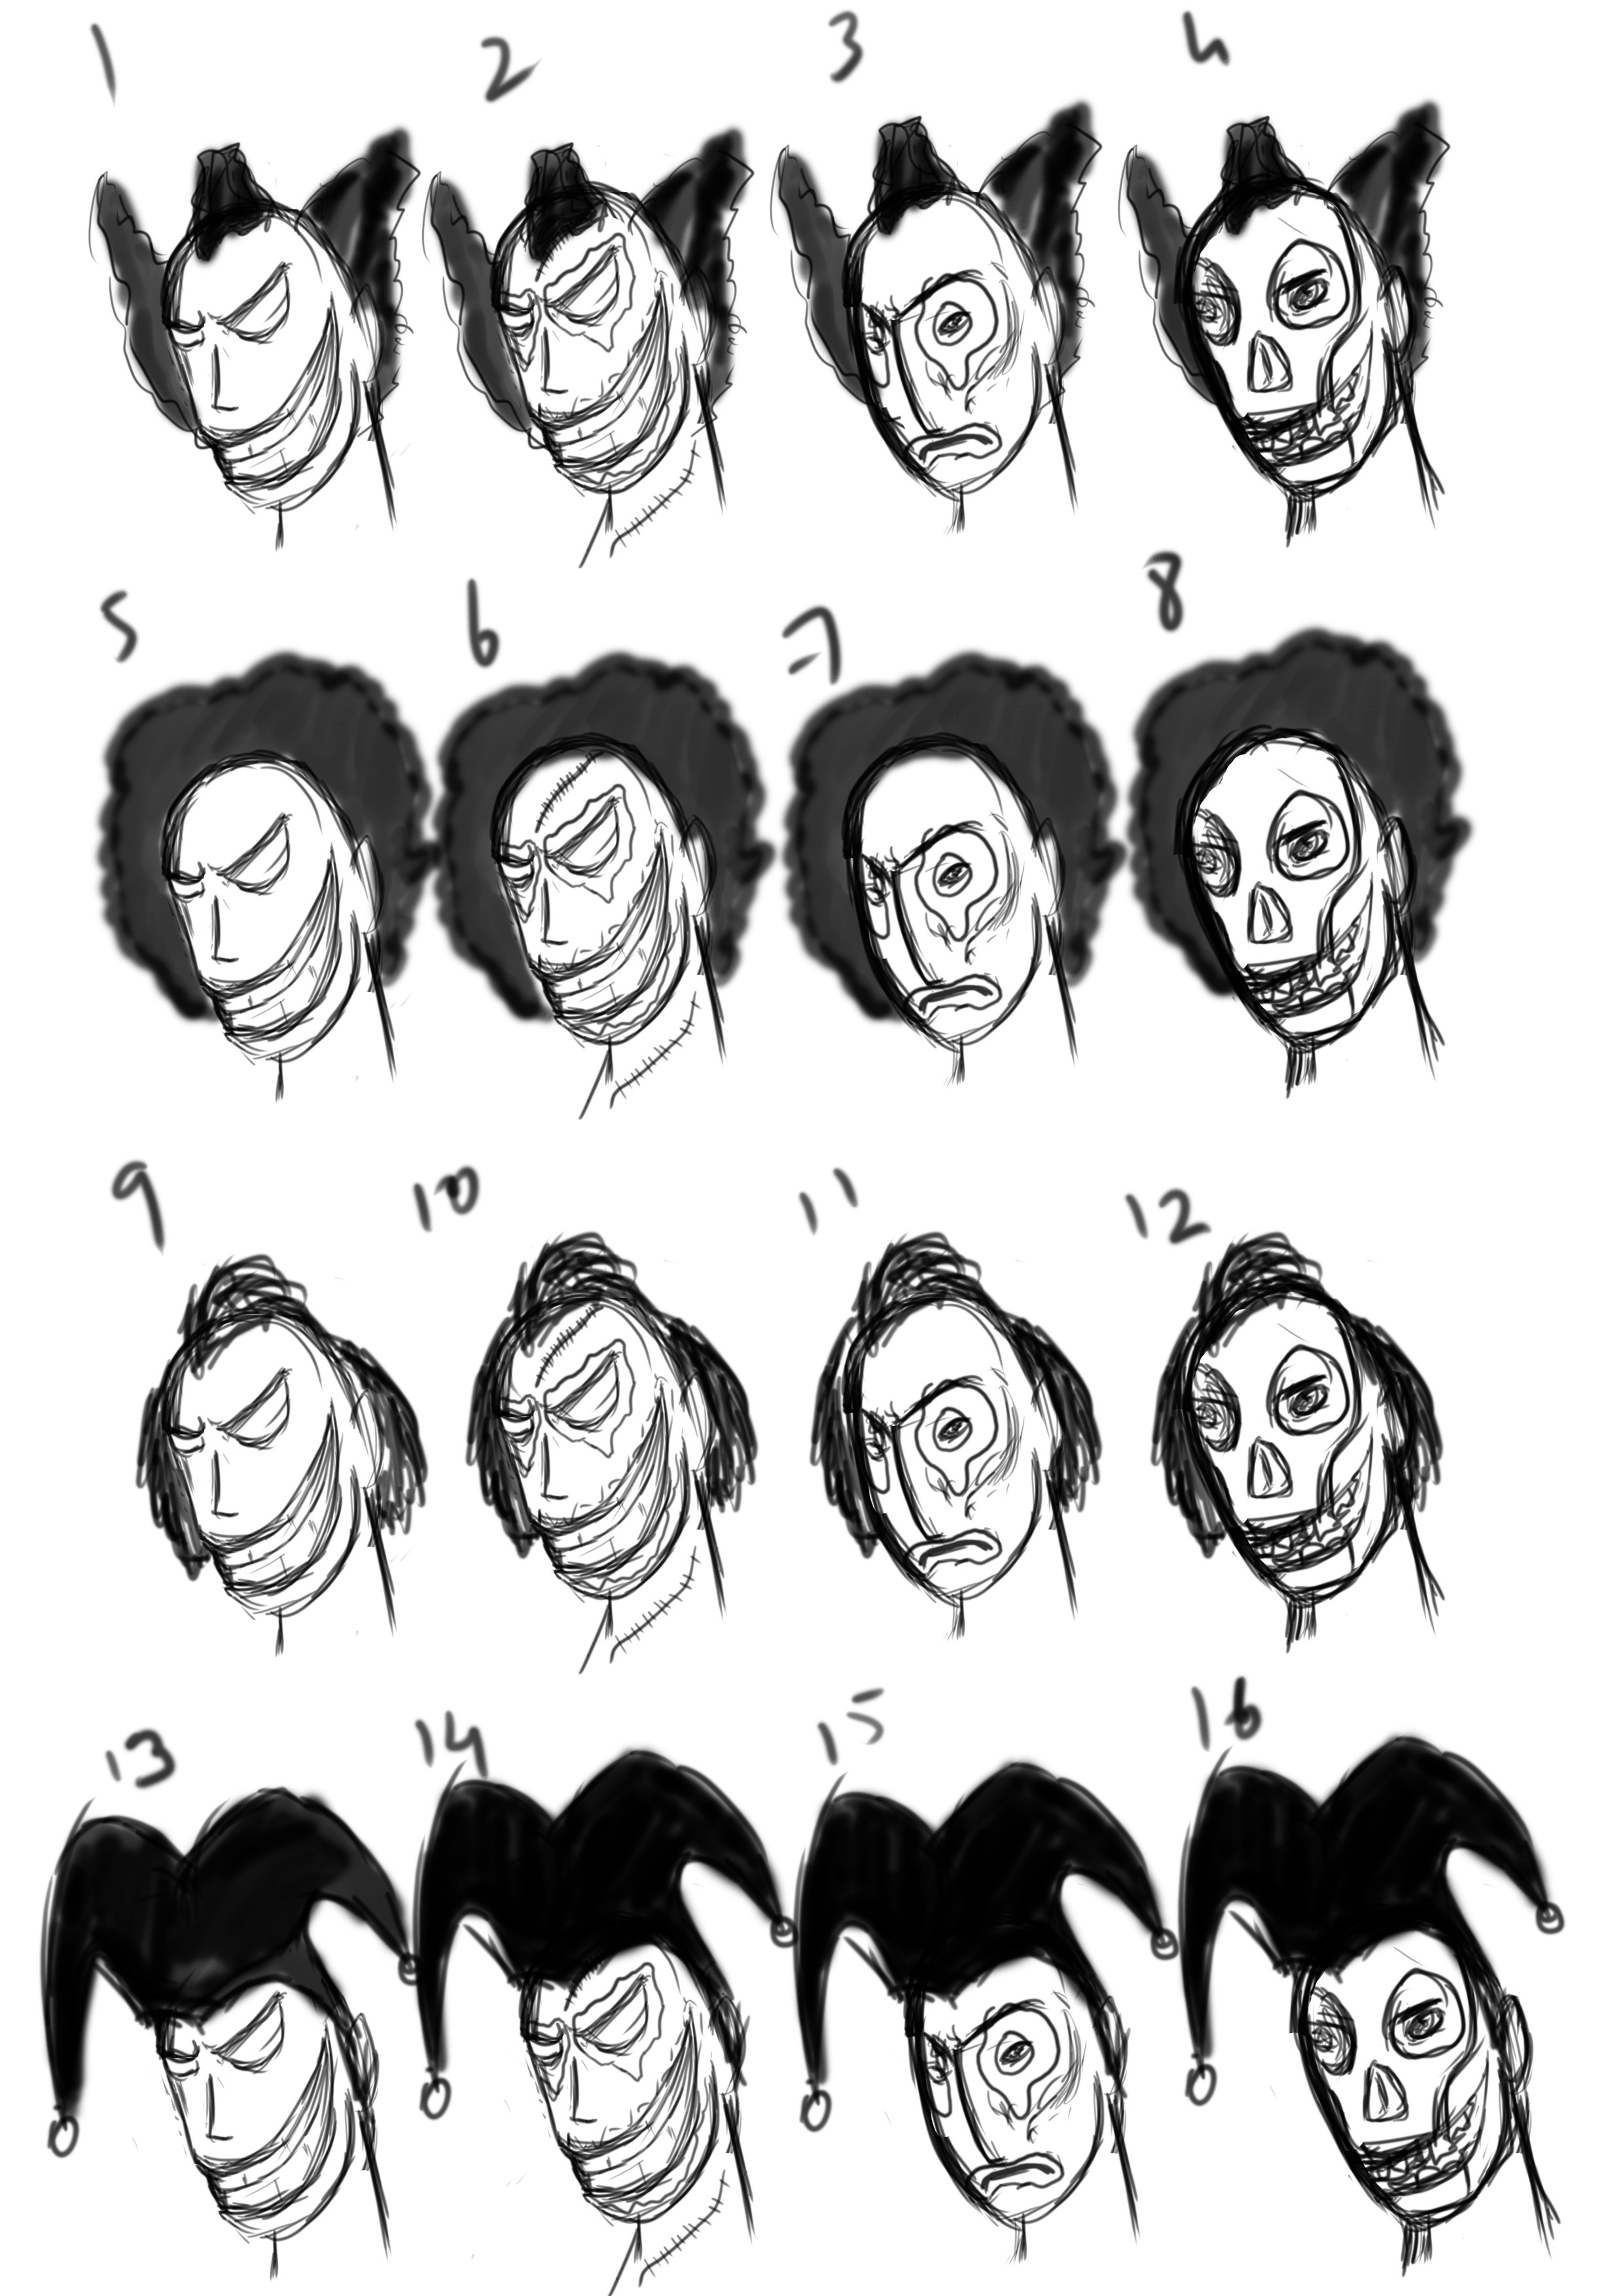 face and hairstyle concepts